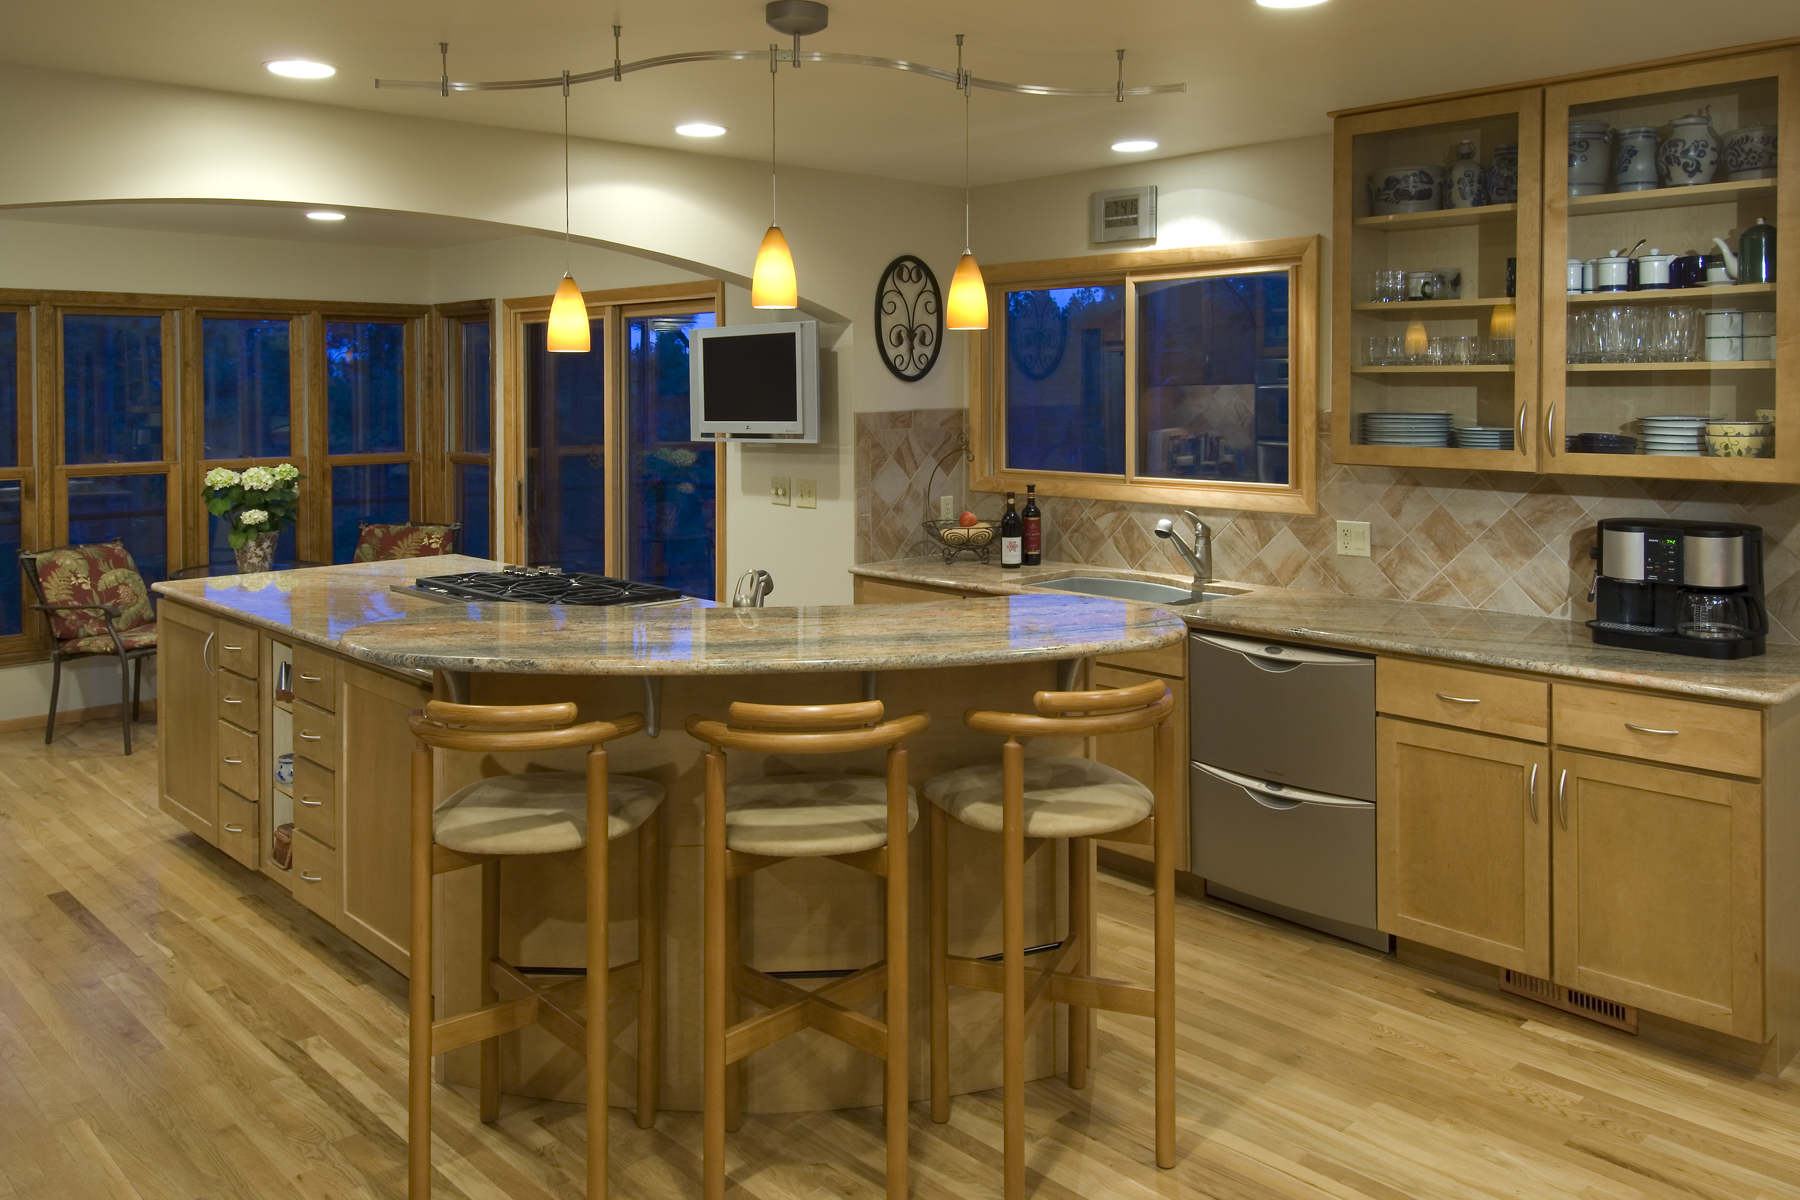 Kitchen Remodeling in Colorado Springs, CO - Kitchen Design Contractors